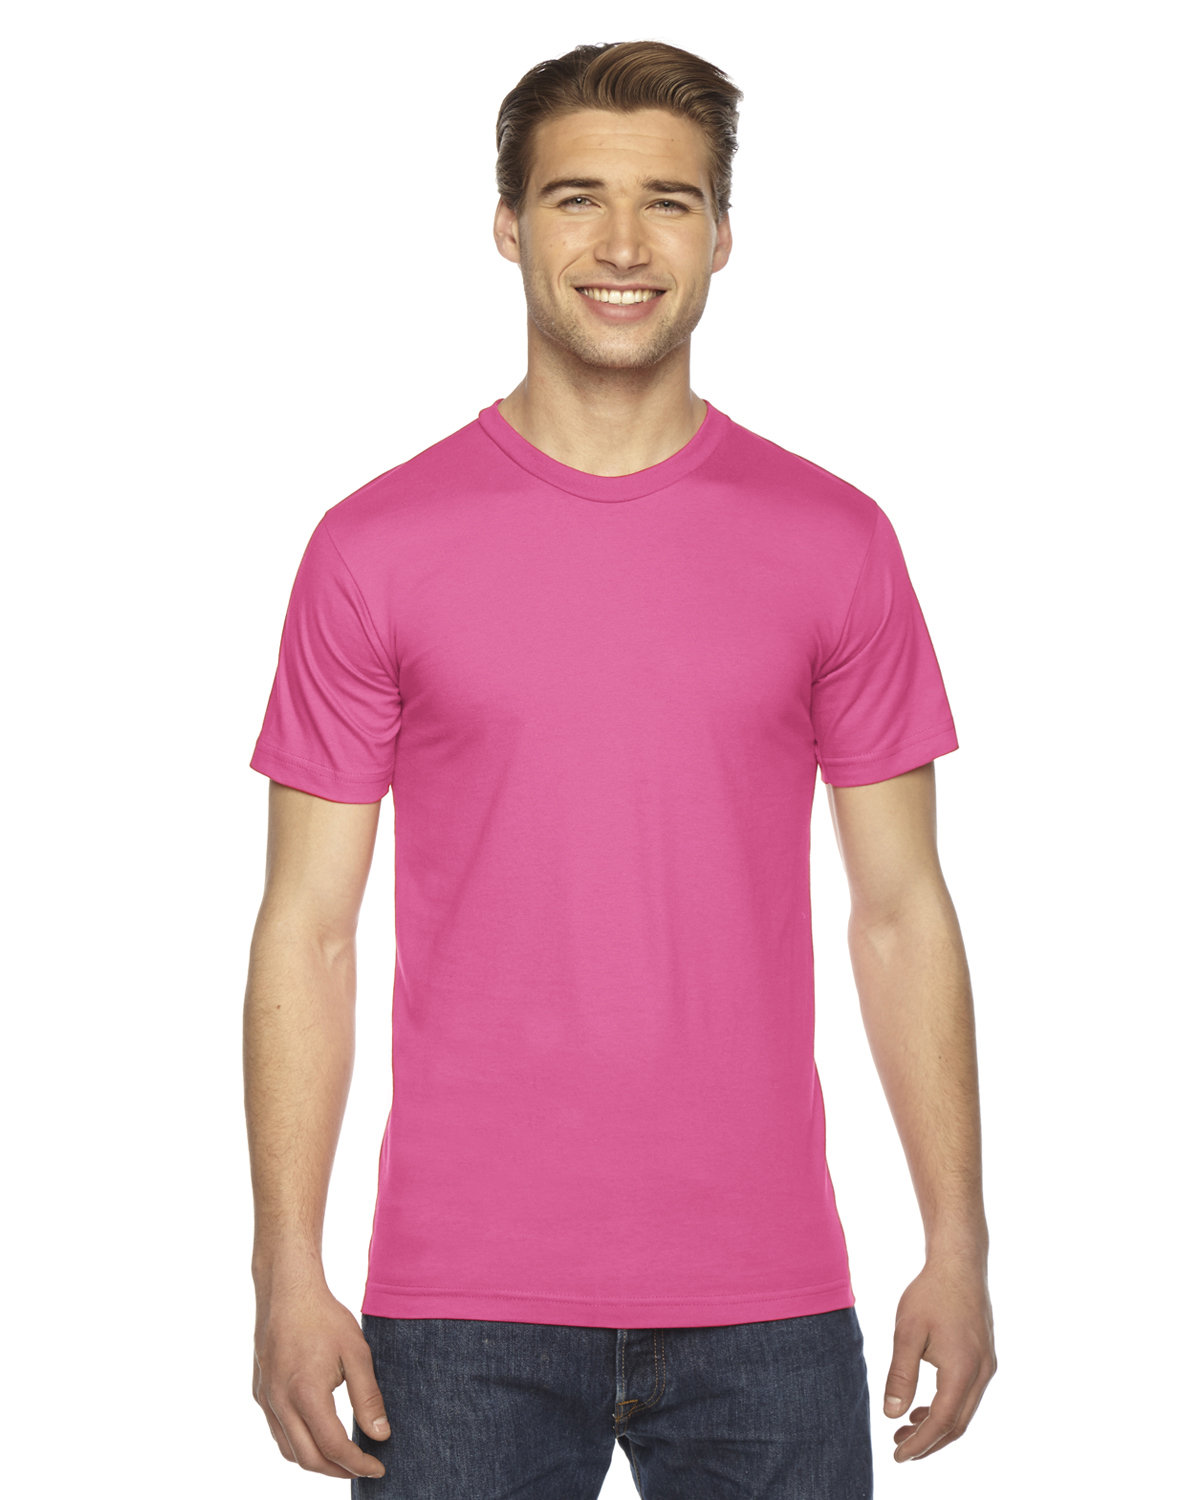 American Apparel Unisex Fine Jersey USA Made T-Shirt FUCHSIA